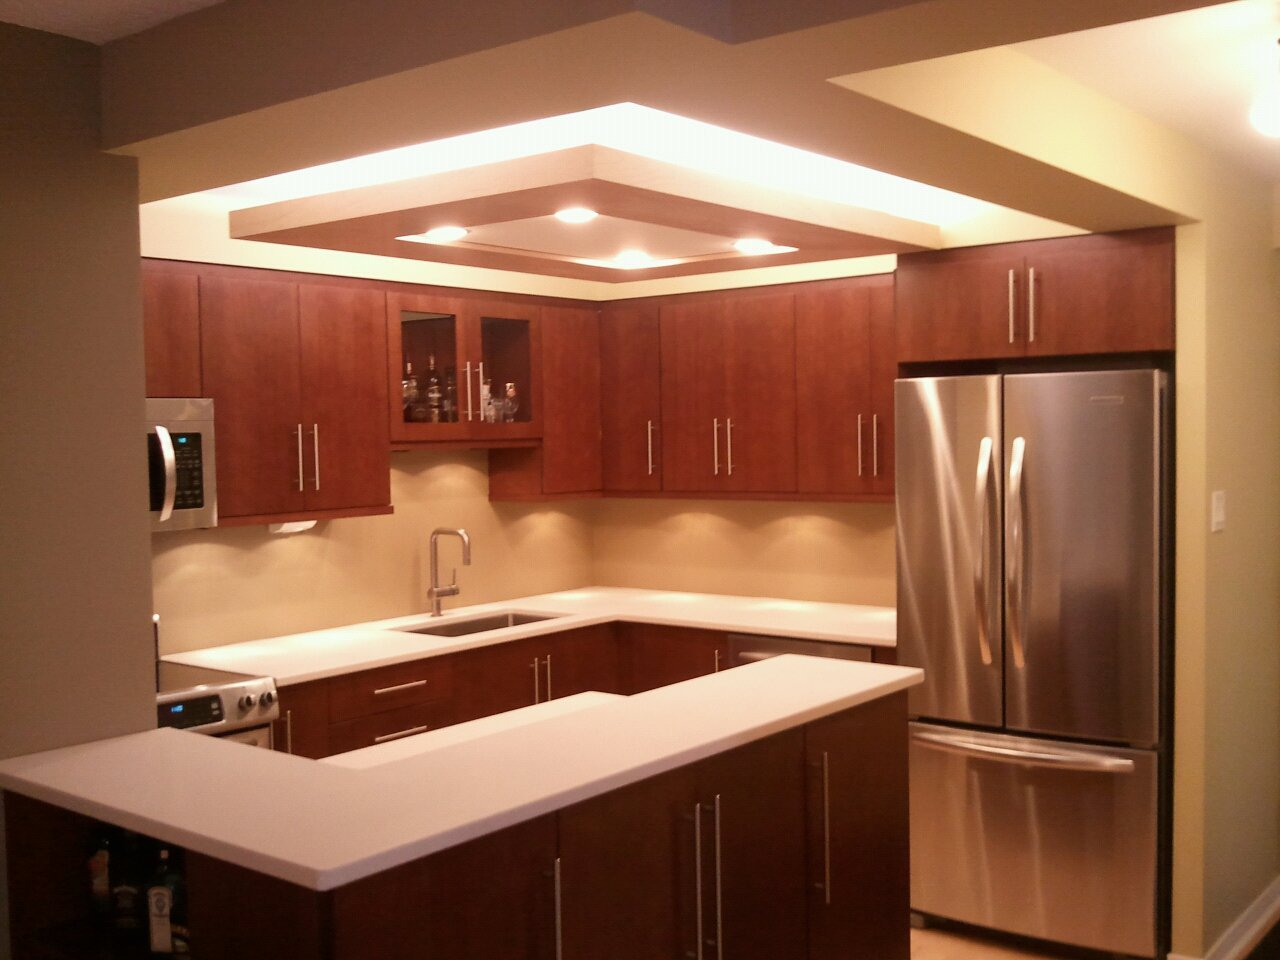 Kitchen Ceilings Designs Update Drop Ceiling Kitchen Lighting Simple